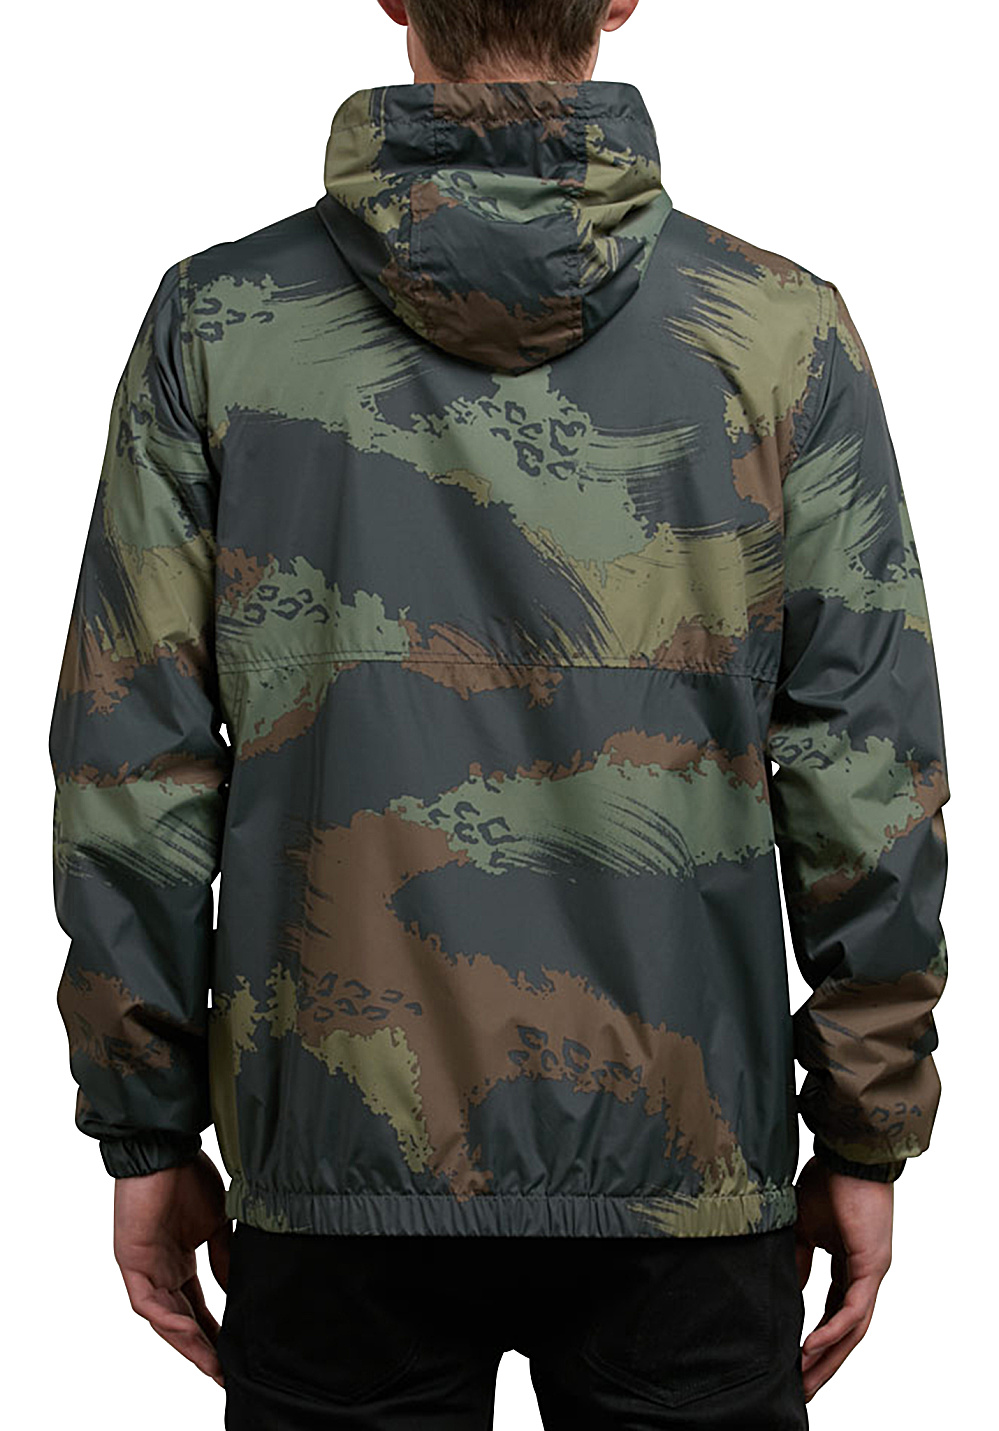 ccedf769f93c4 Volcom Ermont - Jacket for Men - Camo - Planet Sports